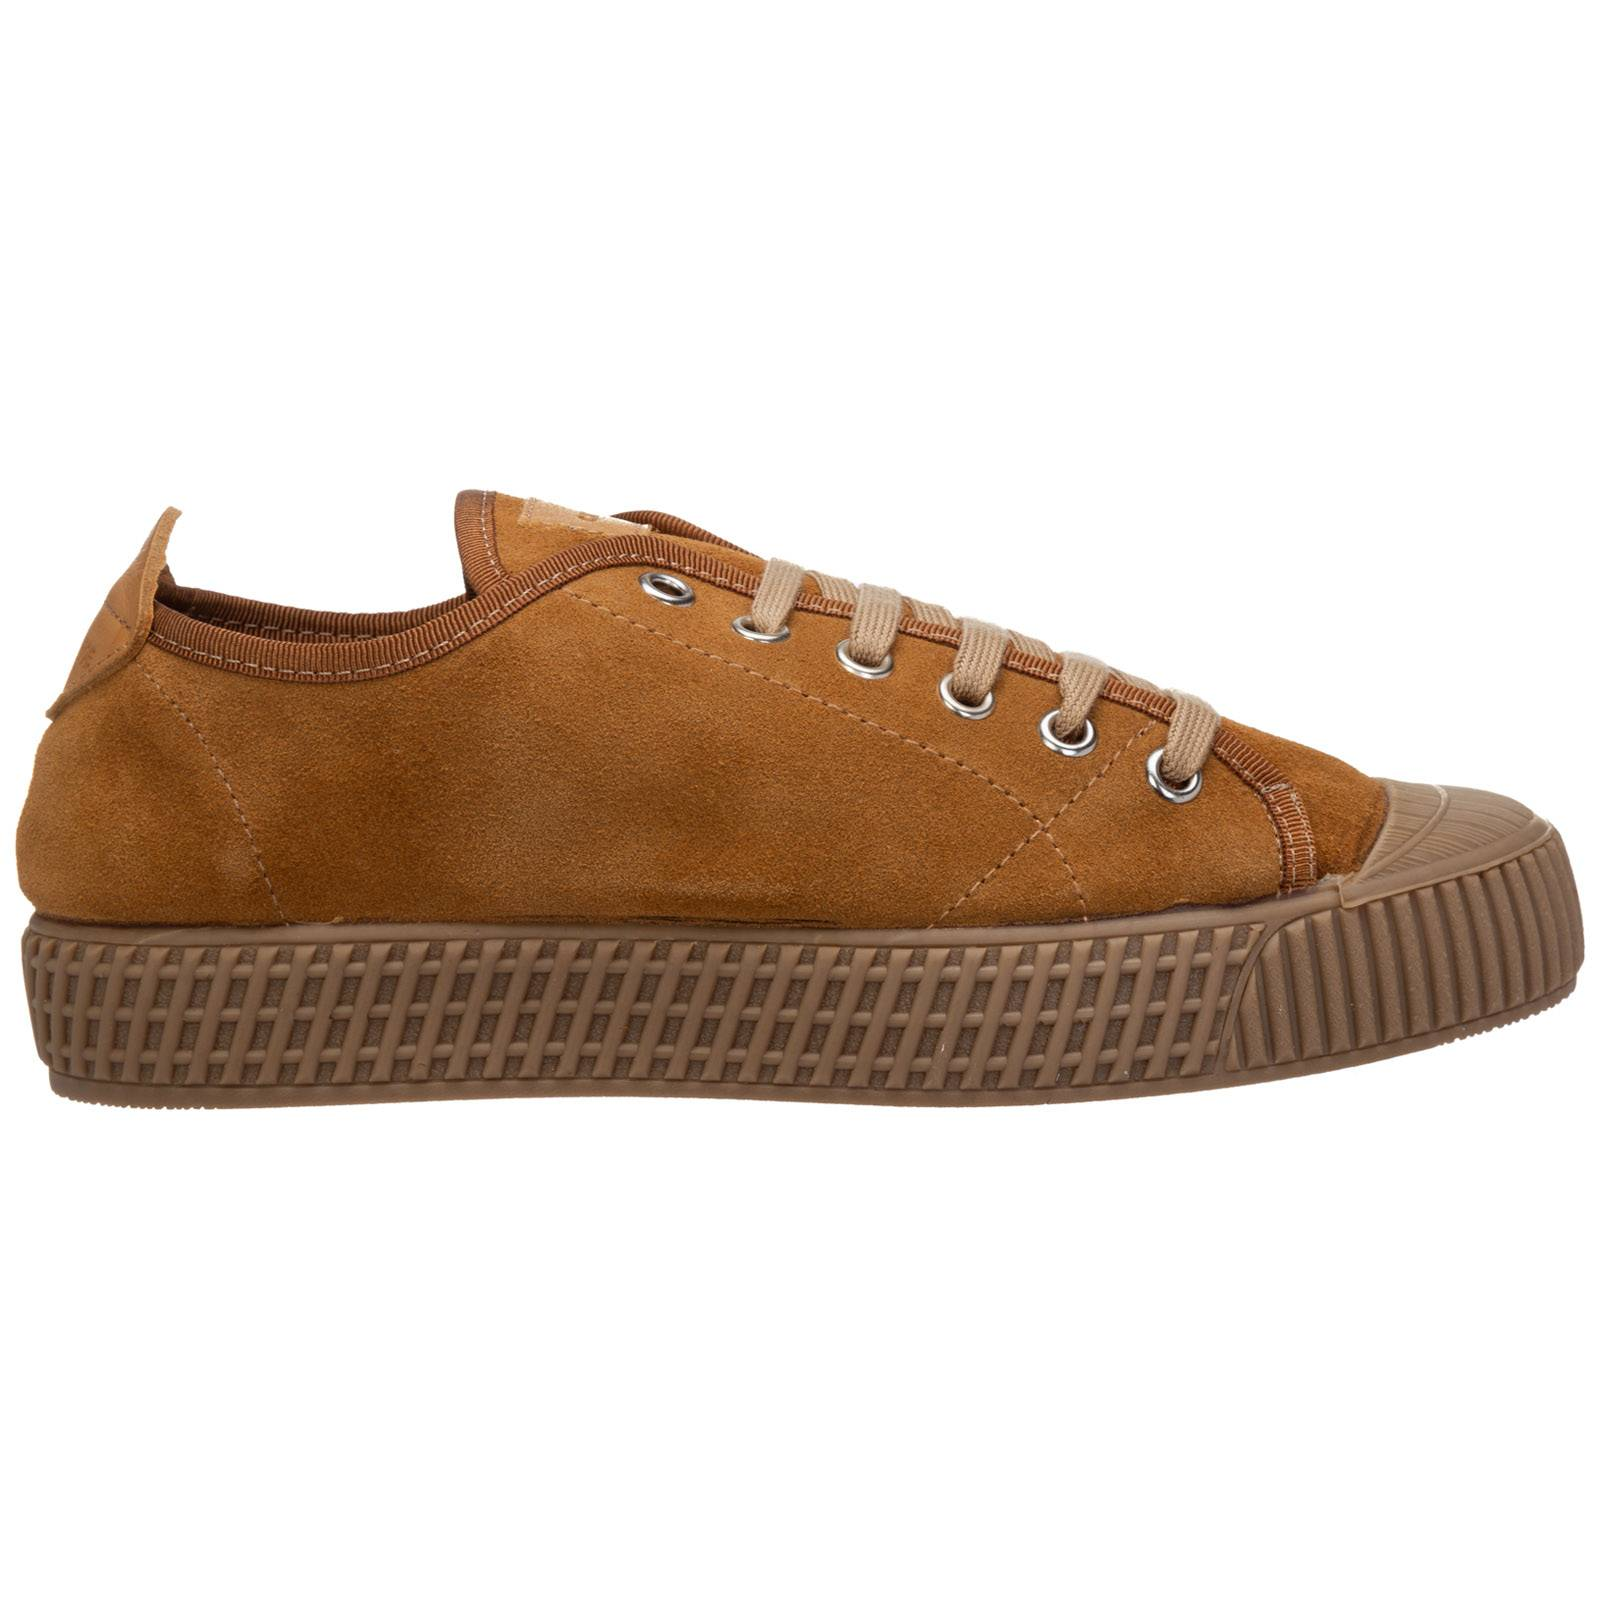 Car Shoe Women's shoes suede trainers sneakers  - Brown - Size: 39